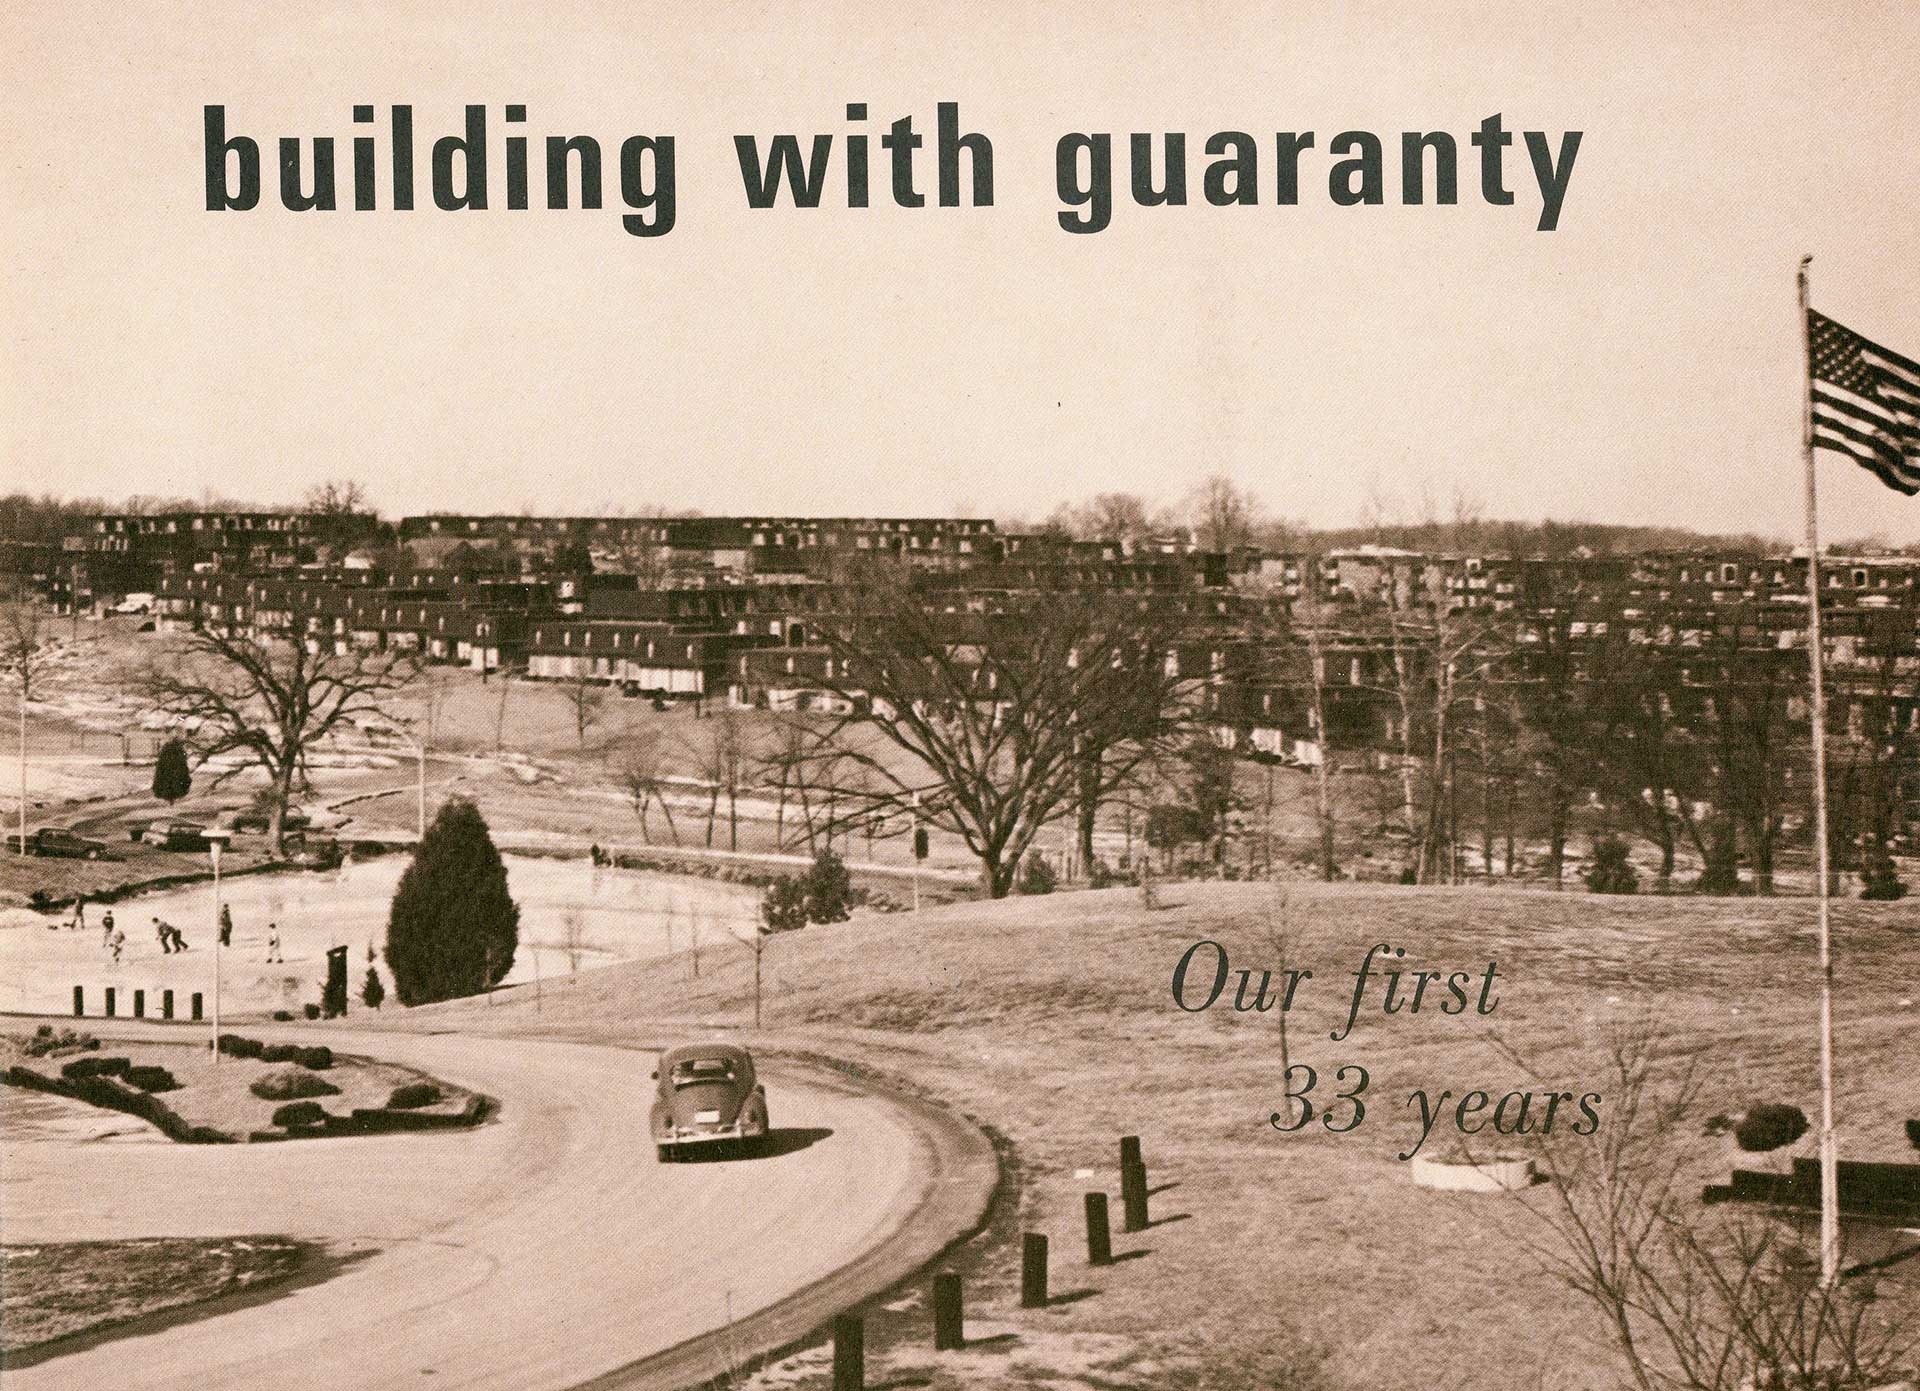 Building with Guaranty - Historical Title Insurance Advertising